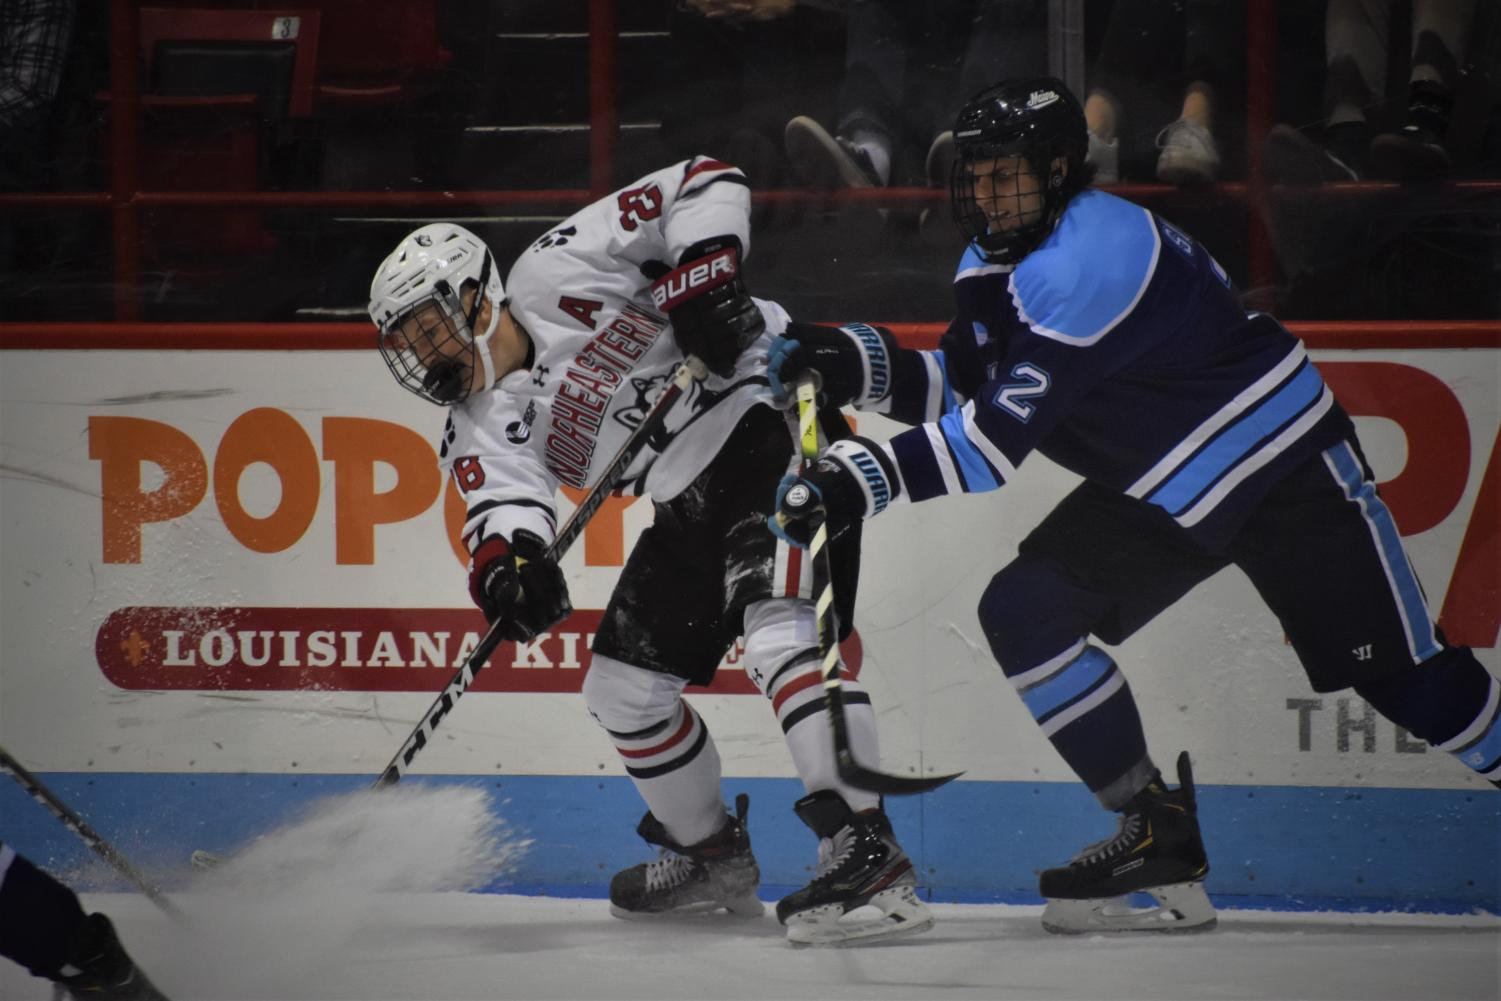 Junior forward Zach Solow passes the puck to a teammate in heavy traffic in today's game versus Maine.